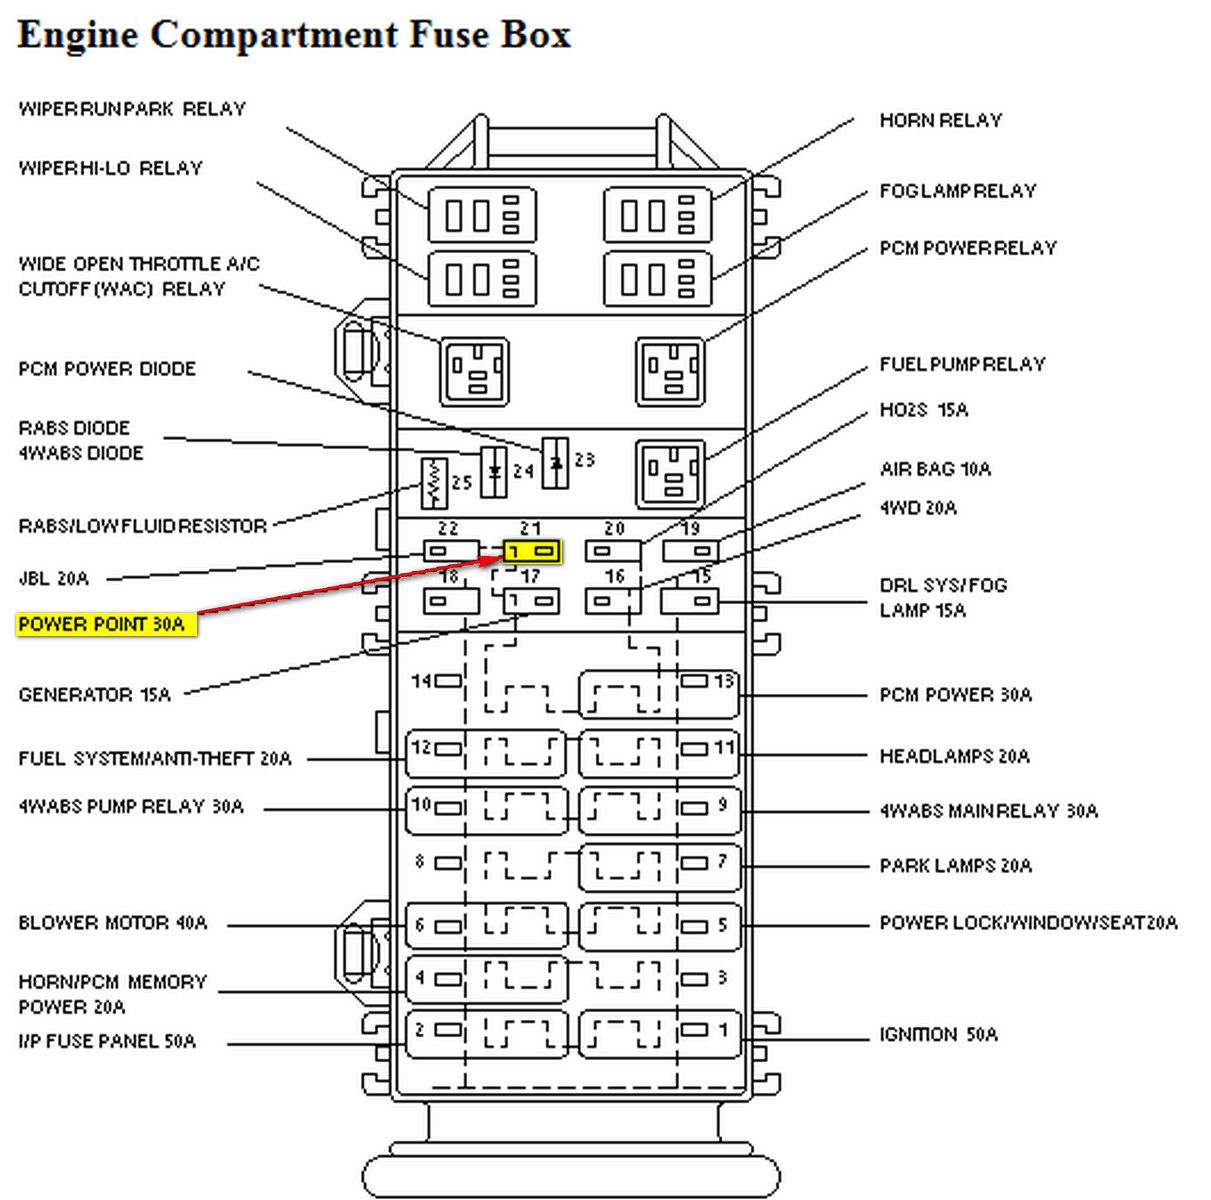 small resolution of 1997 ford explorer headlight fuse box diagram wiring diagrams scematic 1997 ford explorer xlt 4x4 1997 ford explorer diagram